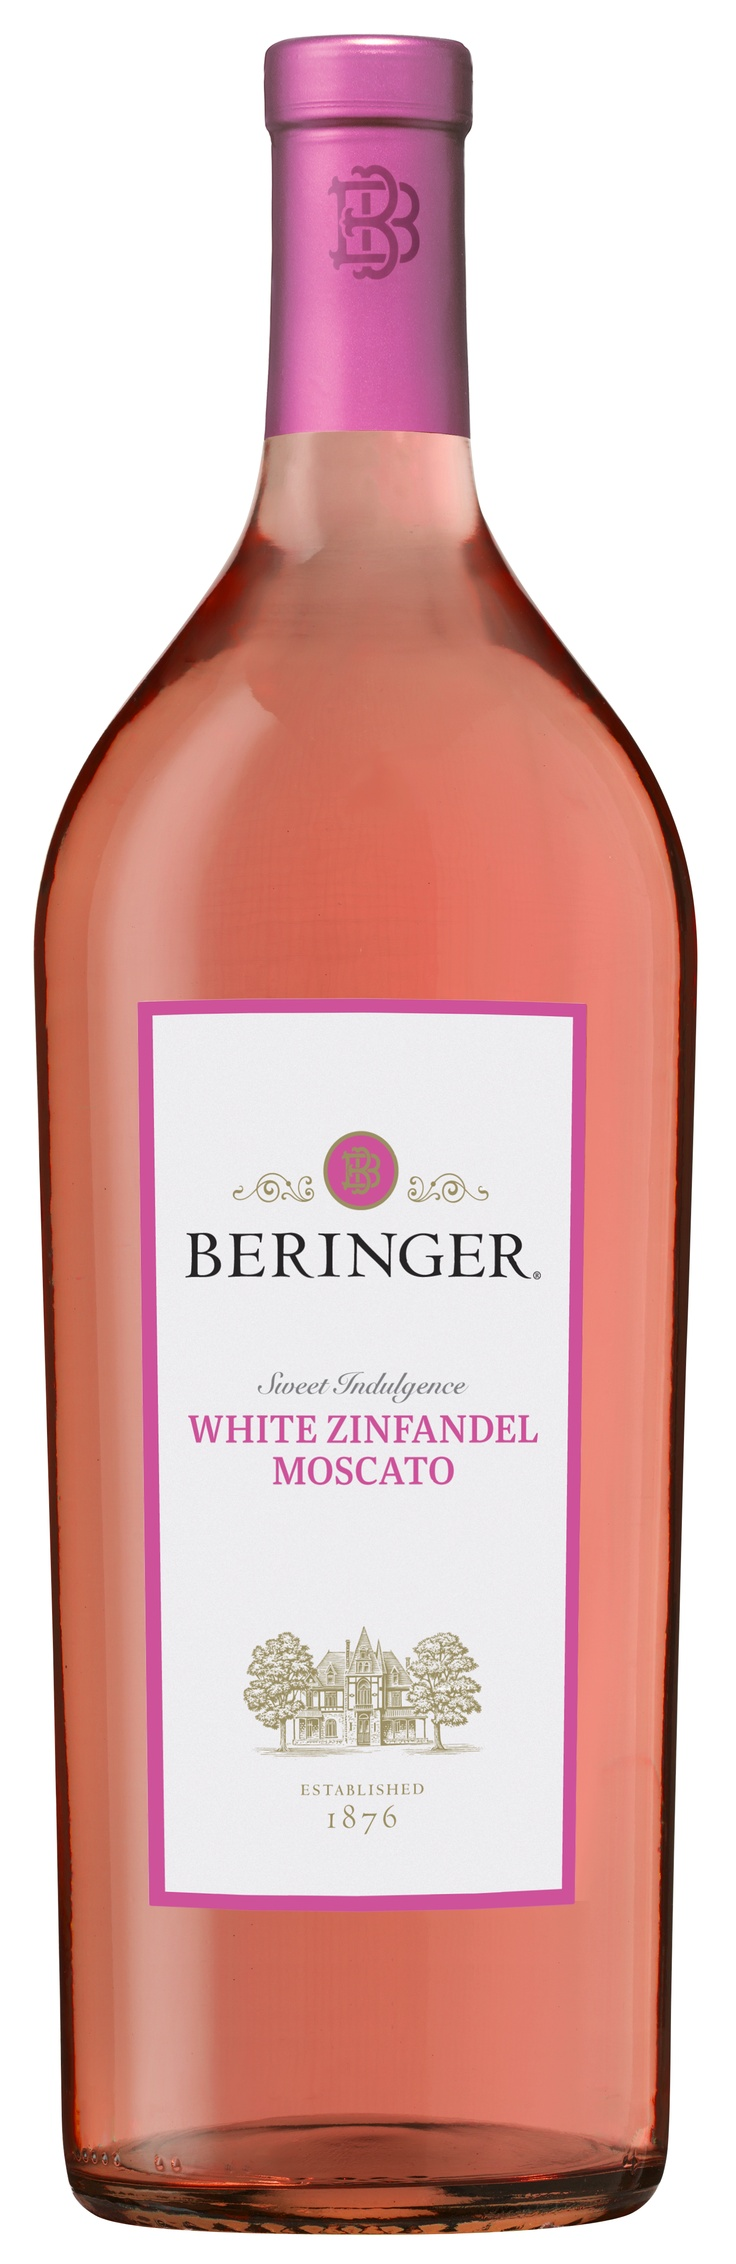 Beringer White Zinfandel Moscato: Rich in texture and not overtly sweet, this wine has great intensity on the nose -- aromas of bright cherries, watermelon sorbet, and strawberries, with a hint of perfume from the Moscato. According to the winemaker, this wine finishes with just enough zest to please a multitude of palates.